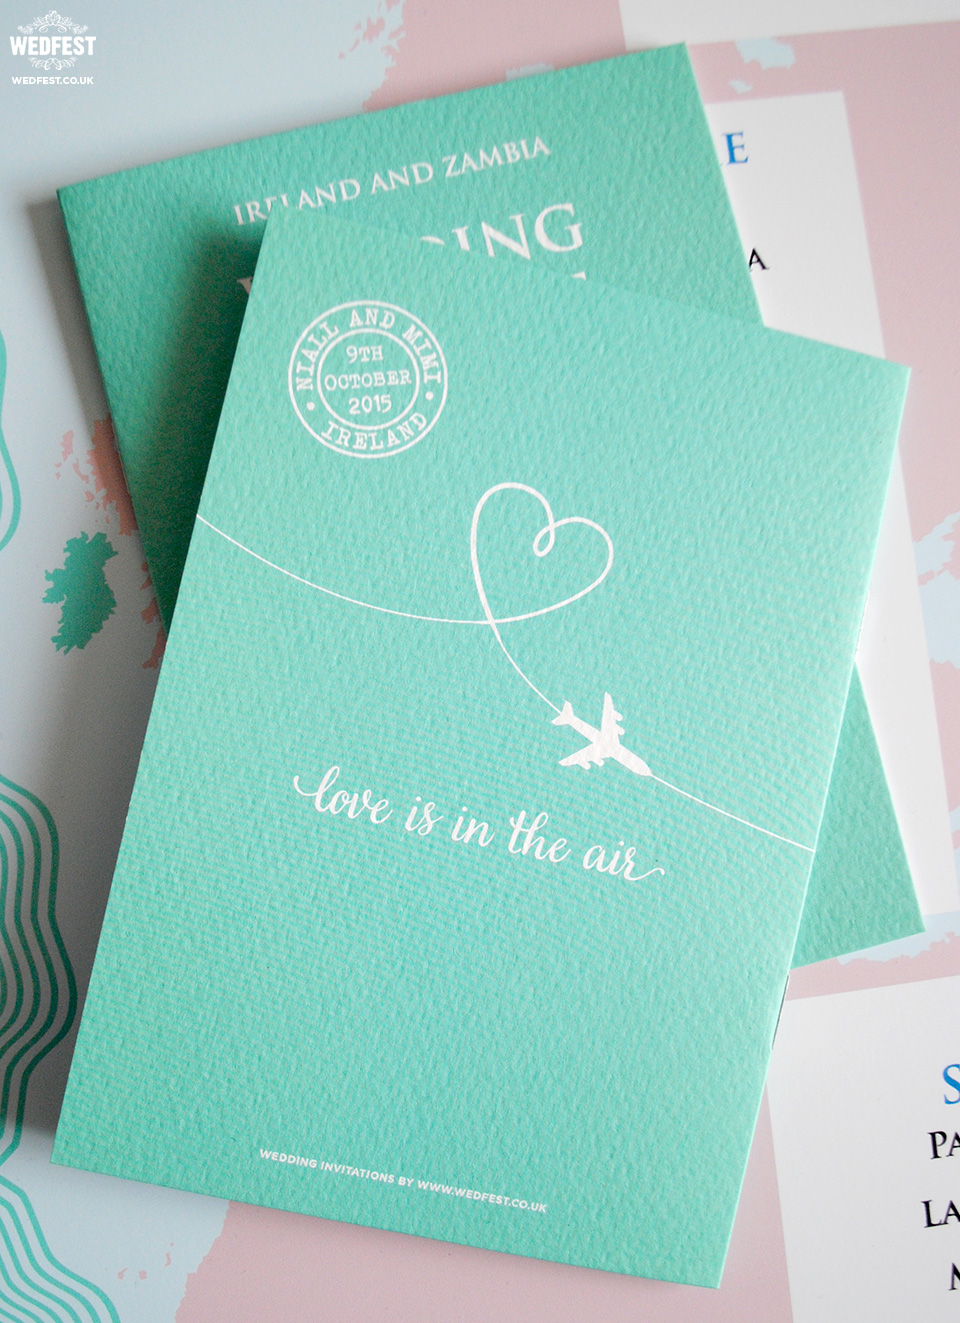 wedding passport invite